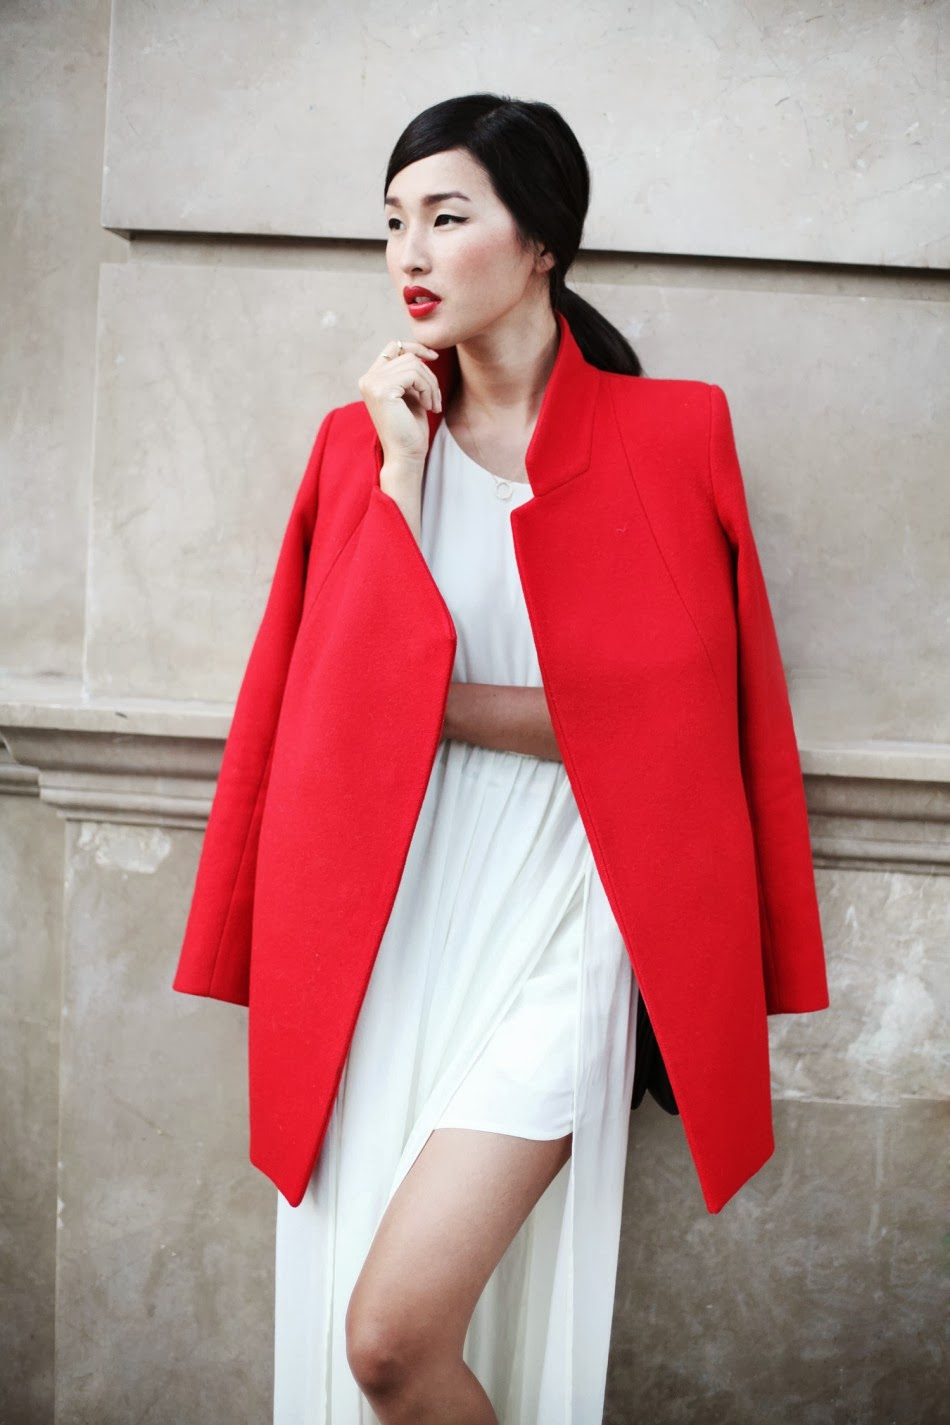 gary pepper girl, nicole warne, red coat, nicholas coat, structured coat, colorful winter coat